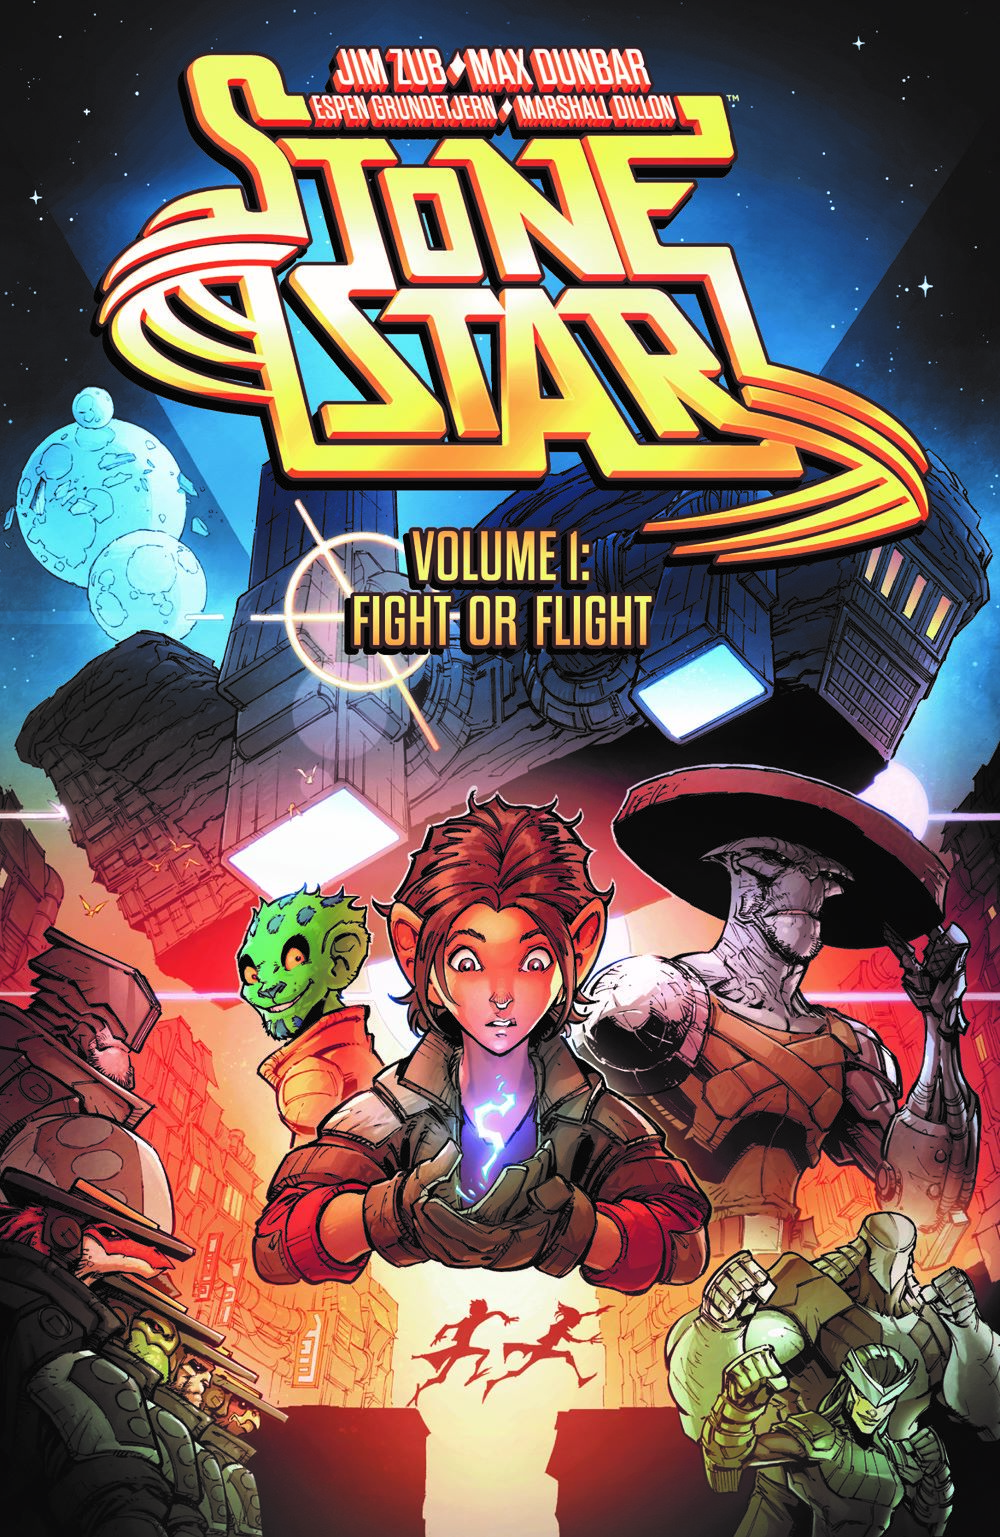 STSTAR_CVR_4X6_SOL Dark Horse Comics May 2021 Solicitations